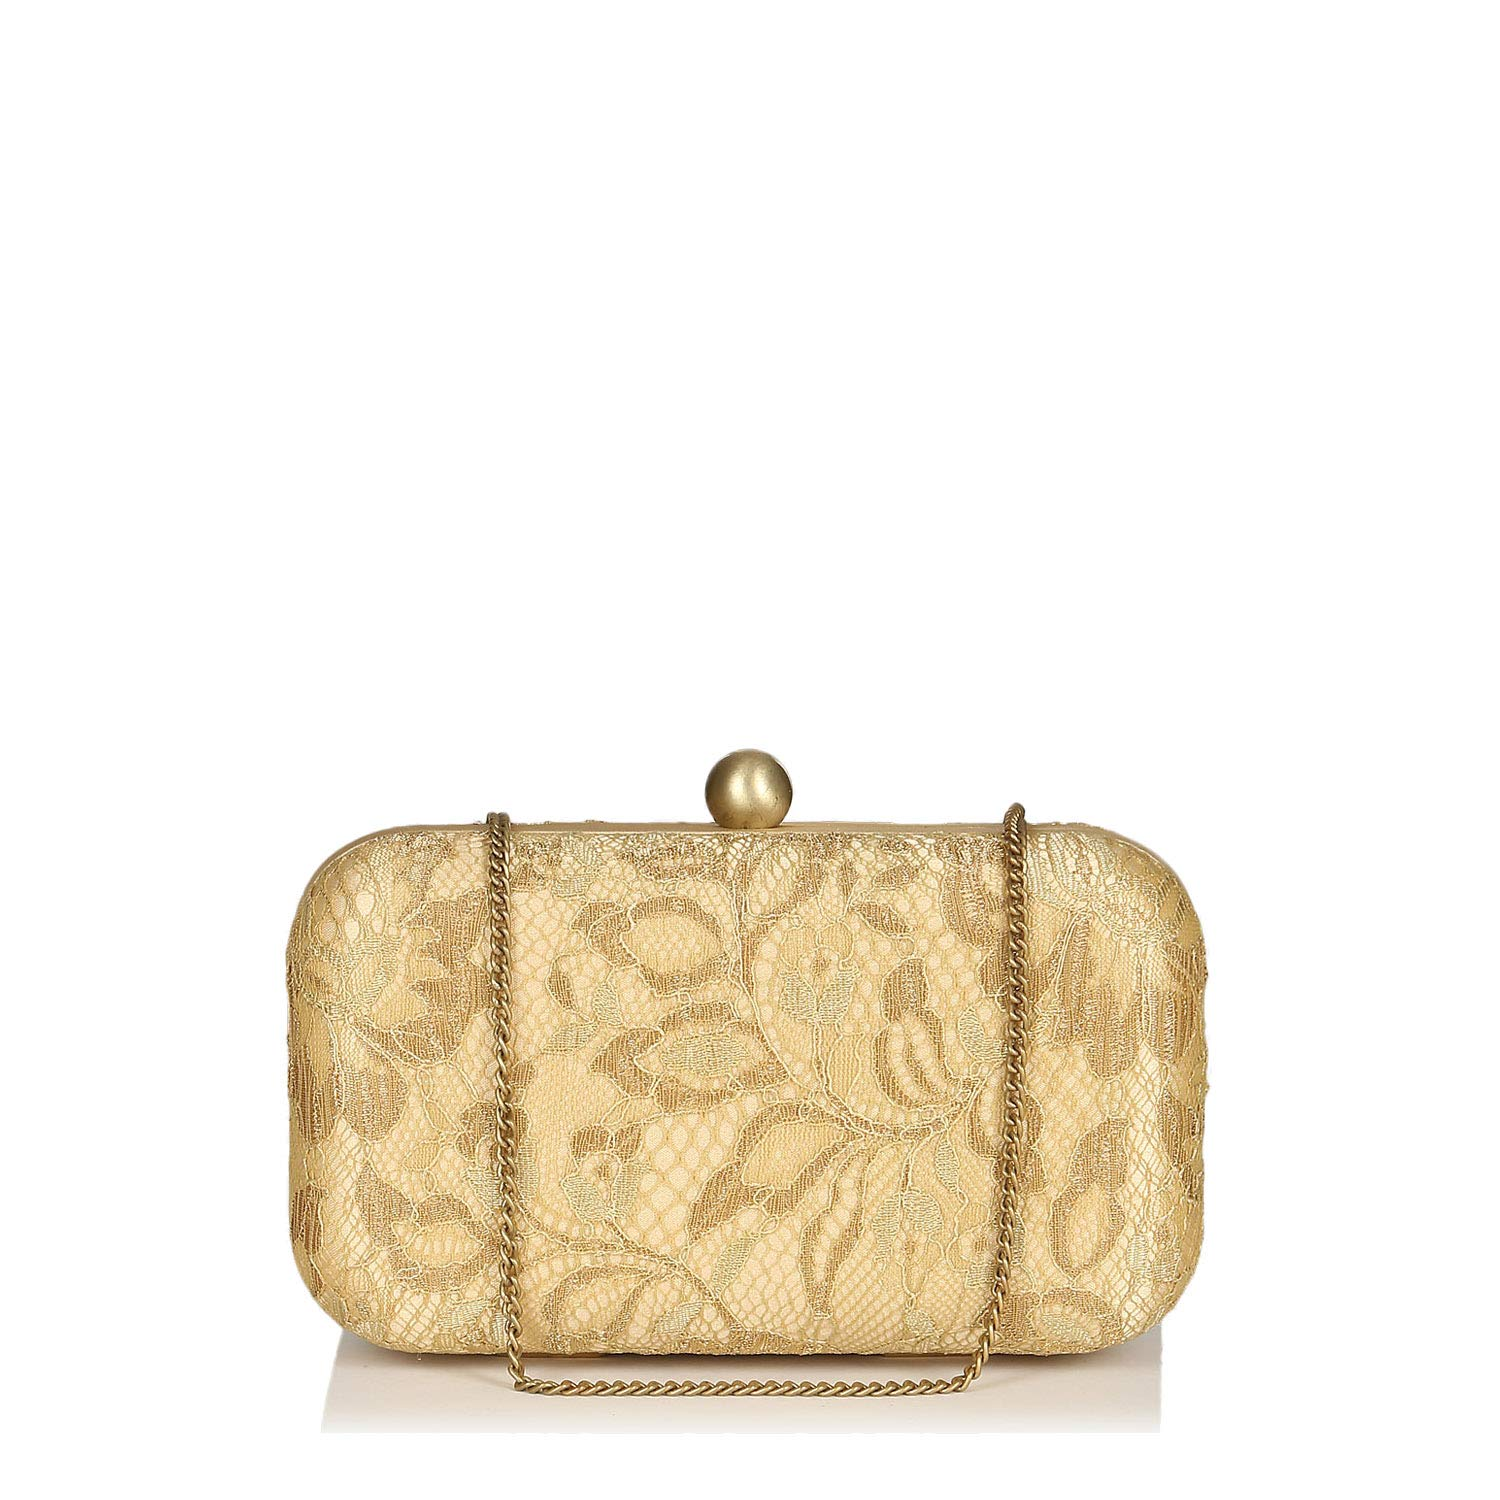 hard box framed Silk Chantilly lace black gold off white party Evening clutch for ladies